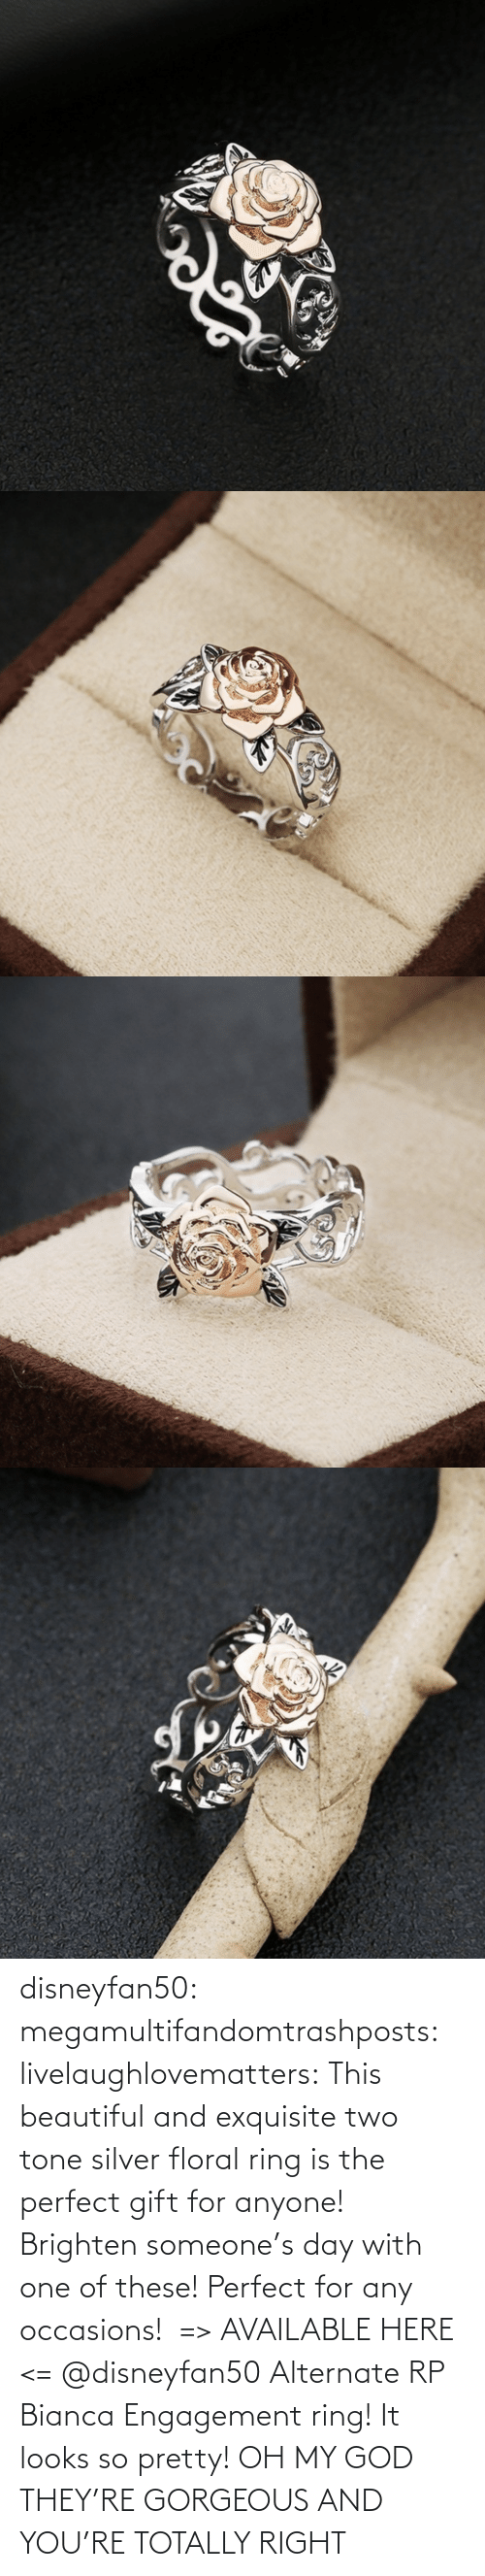 you: disneyfan50: megamultifandomtrashposts:  livelaughlovematters:  This beautiful and exquisite two tone silver floral ring is the perfect gift for anyone! Brighten someone's day with one of these! Perfect for any occasions!  => AVAILABLE HERE <=    @disneyfan50 Alternate RP Bianca Engagement ring! It looks so pretty!  OH MY GOD THEY'RE GORGEOUS AND YOU'RE TOTALLY RIGHT